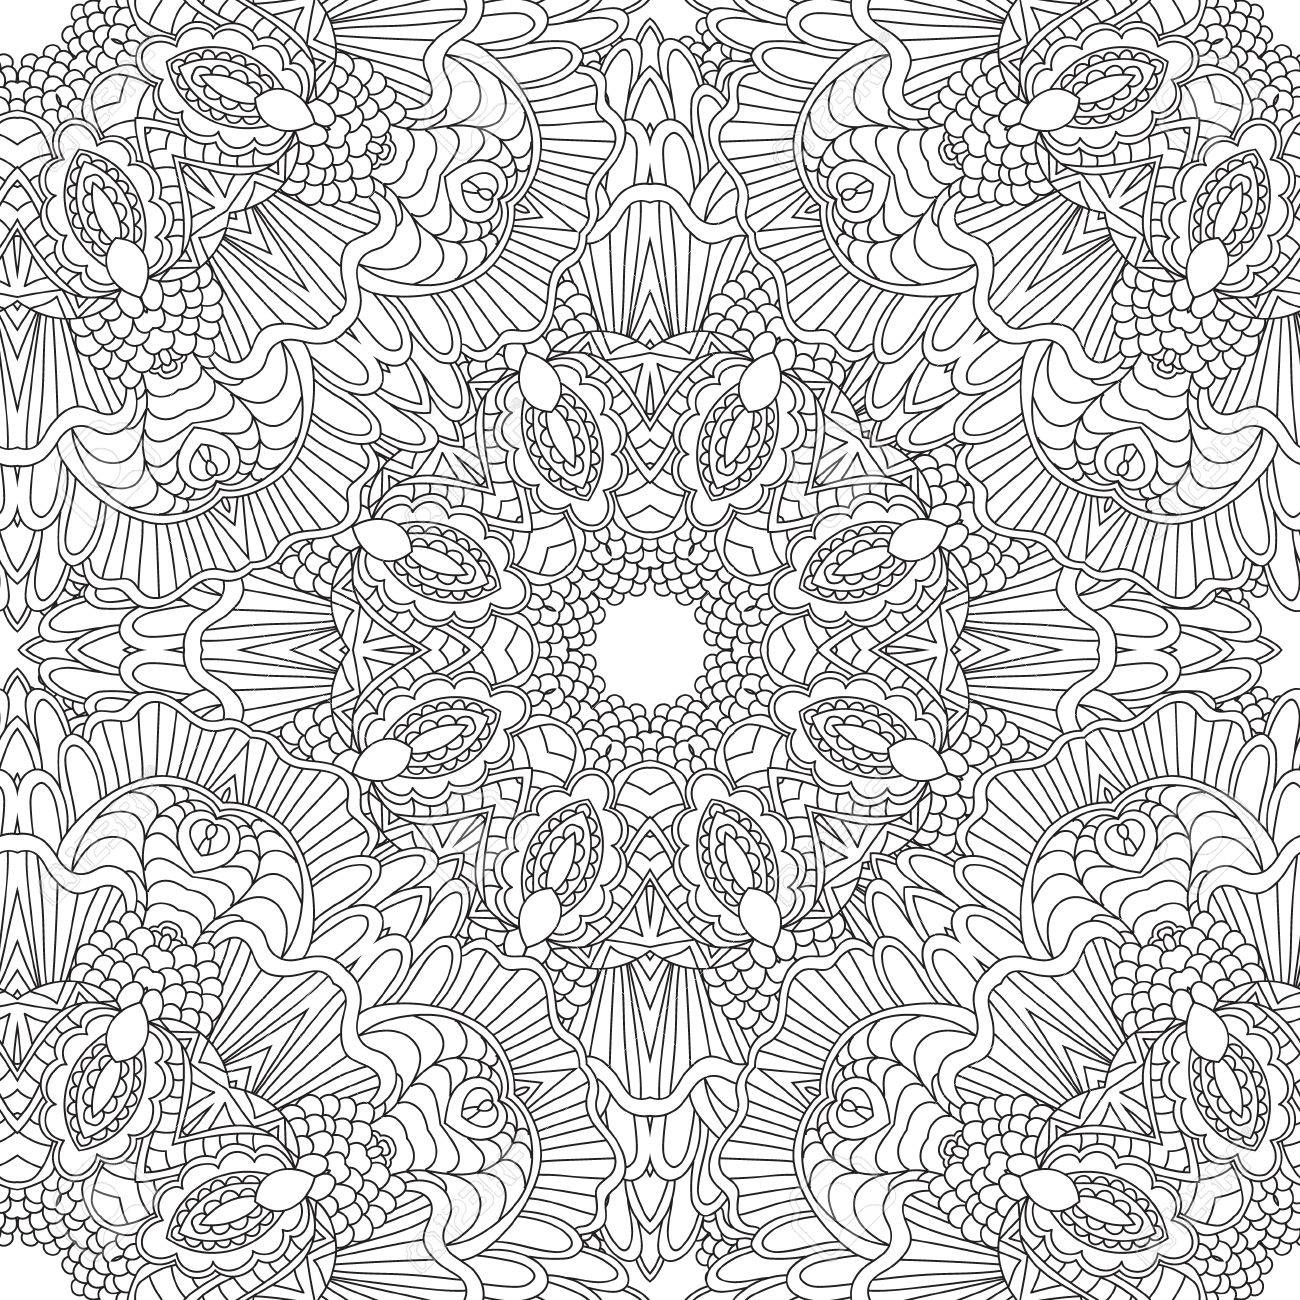 Coloring Pages For Adults. Coloring Book.Decorative Hand Drawn ...